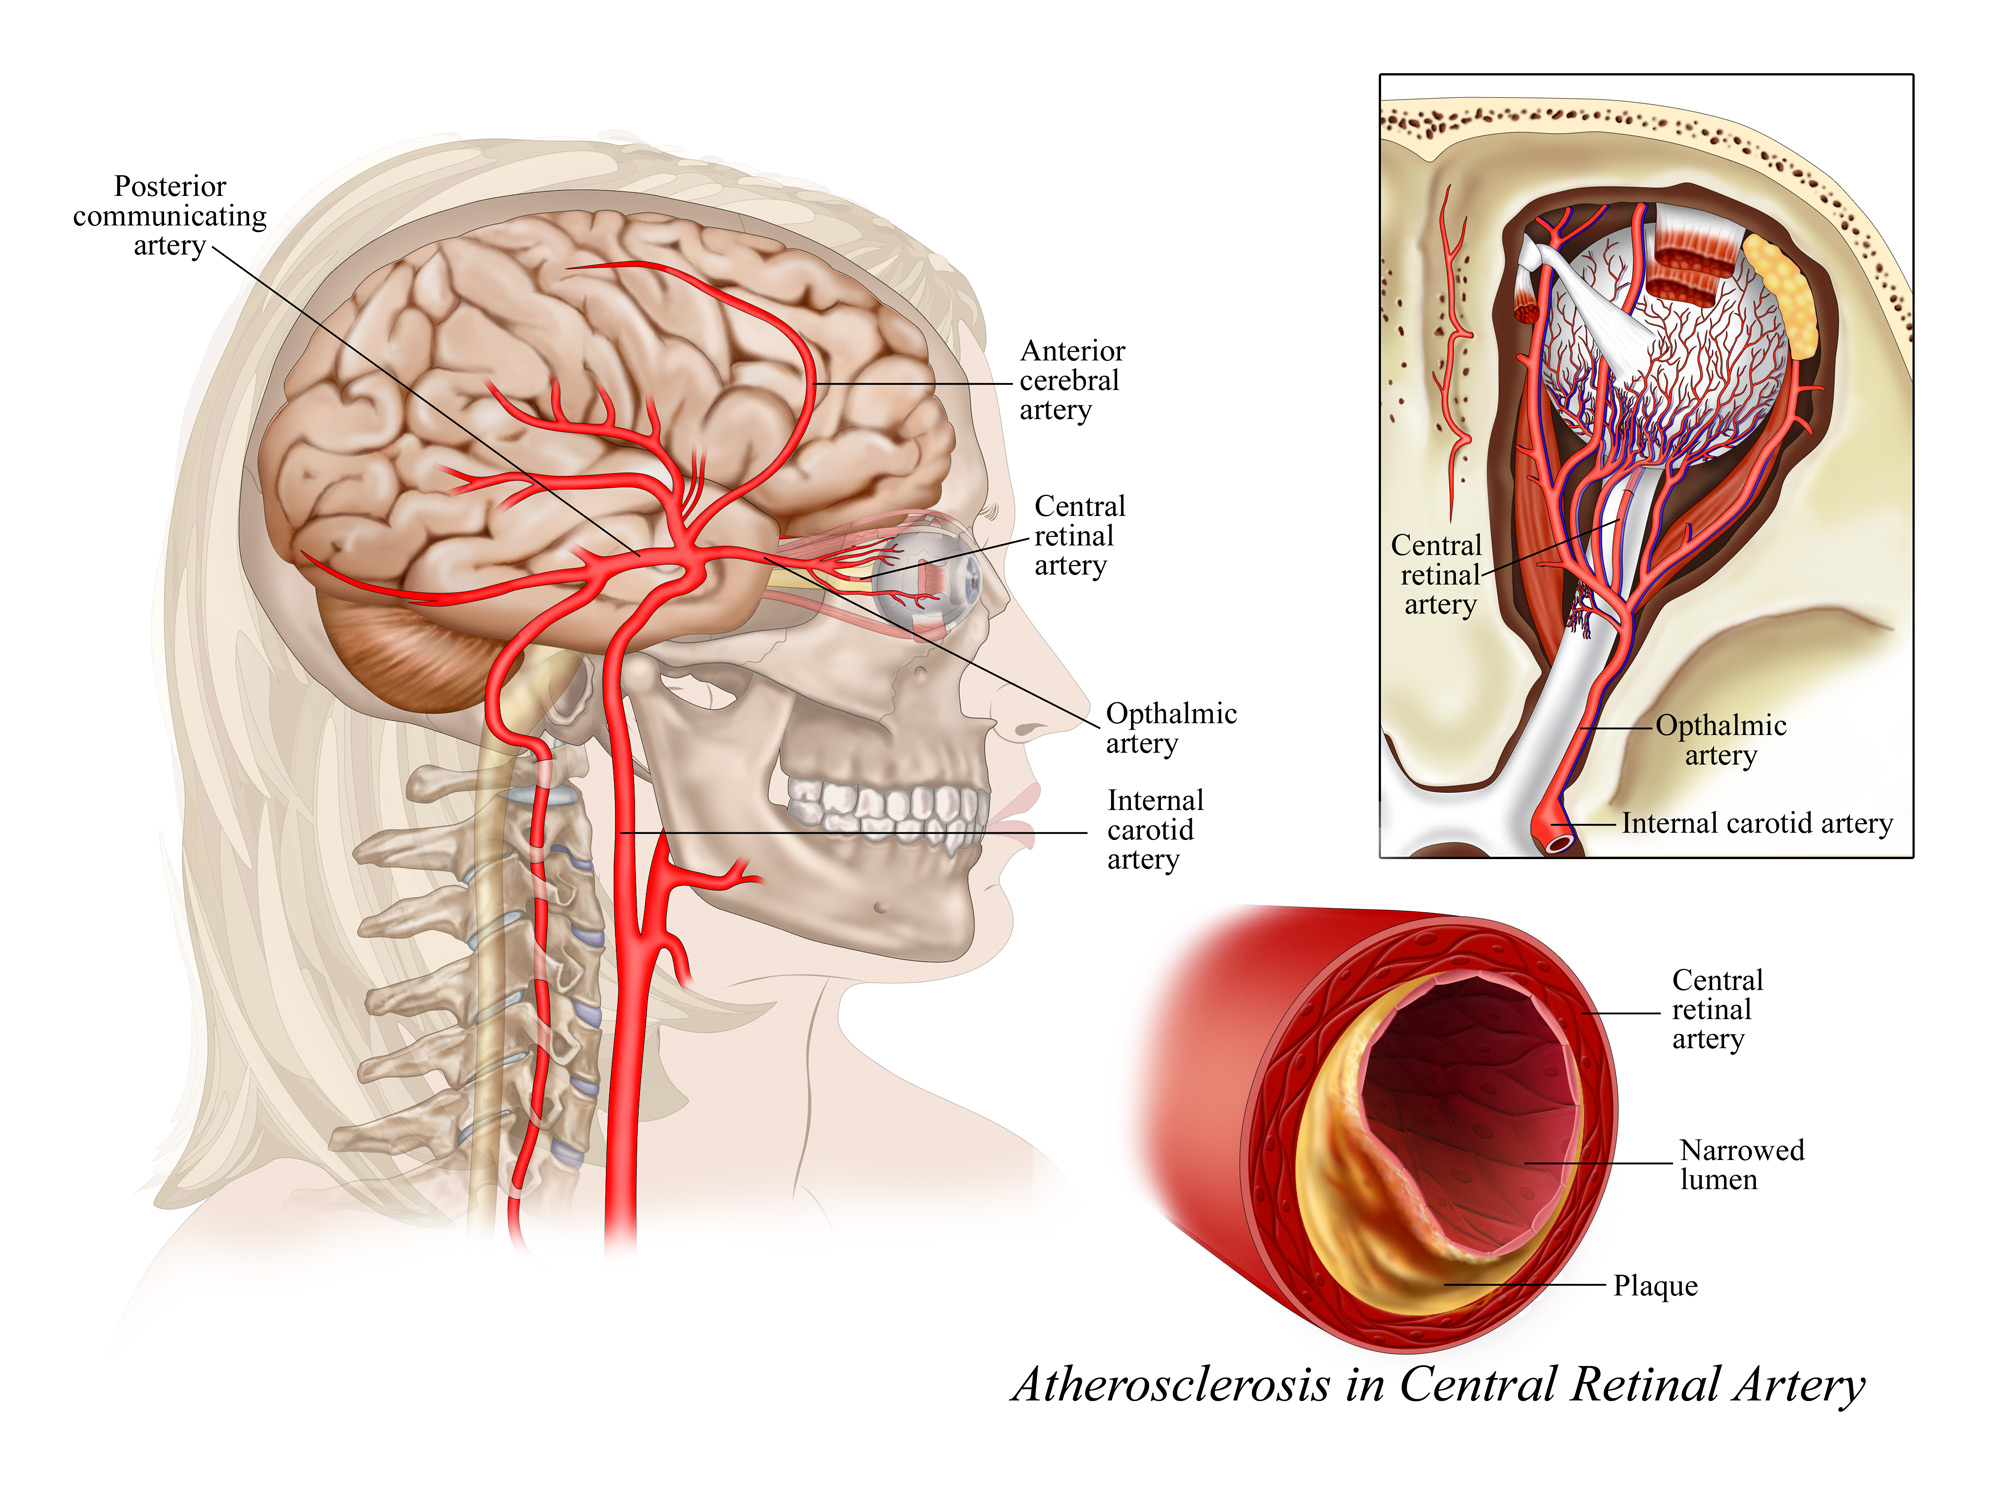 Plaque in Central Retinal Artery